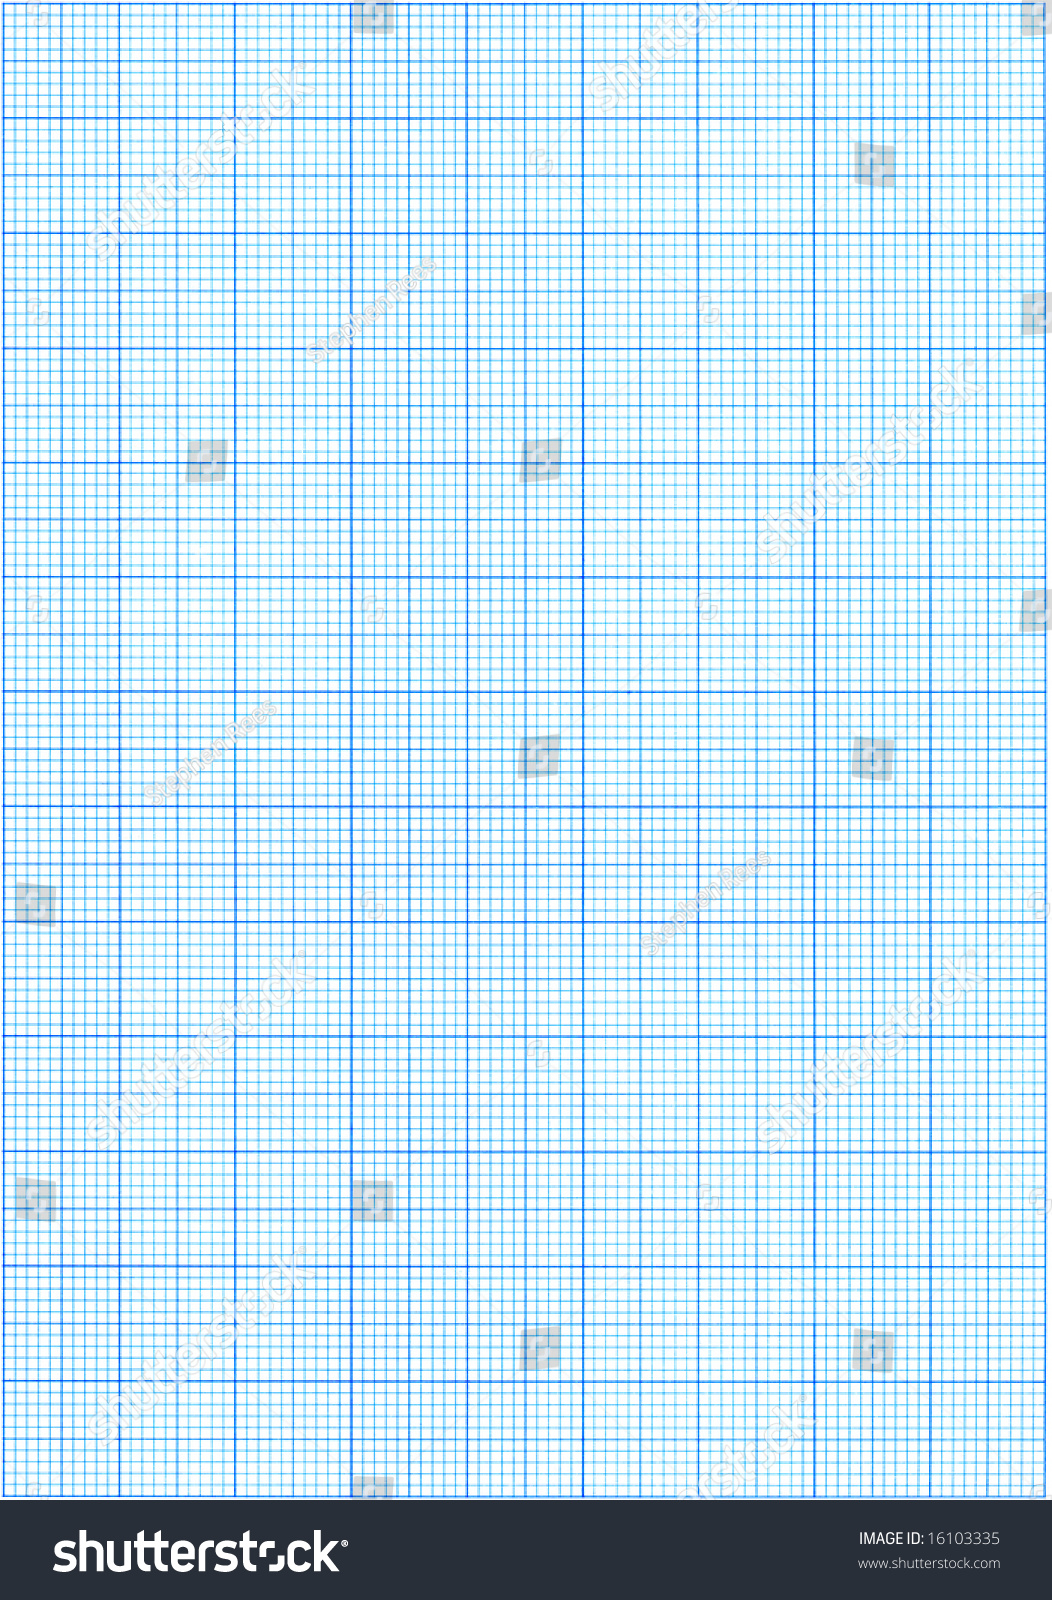 high resolution blue graph paper  stock photo 16103335